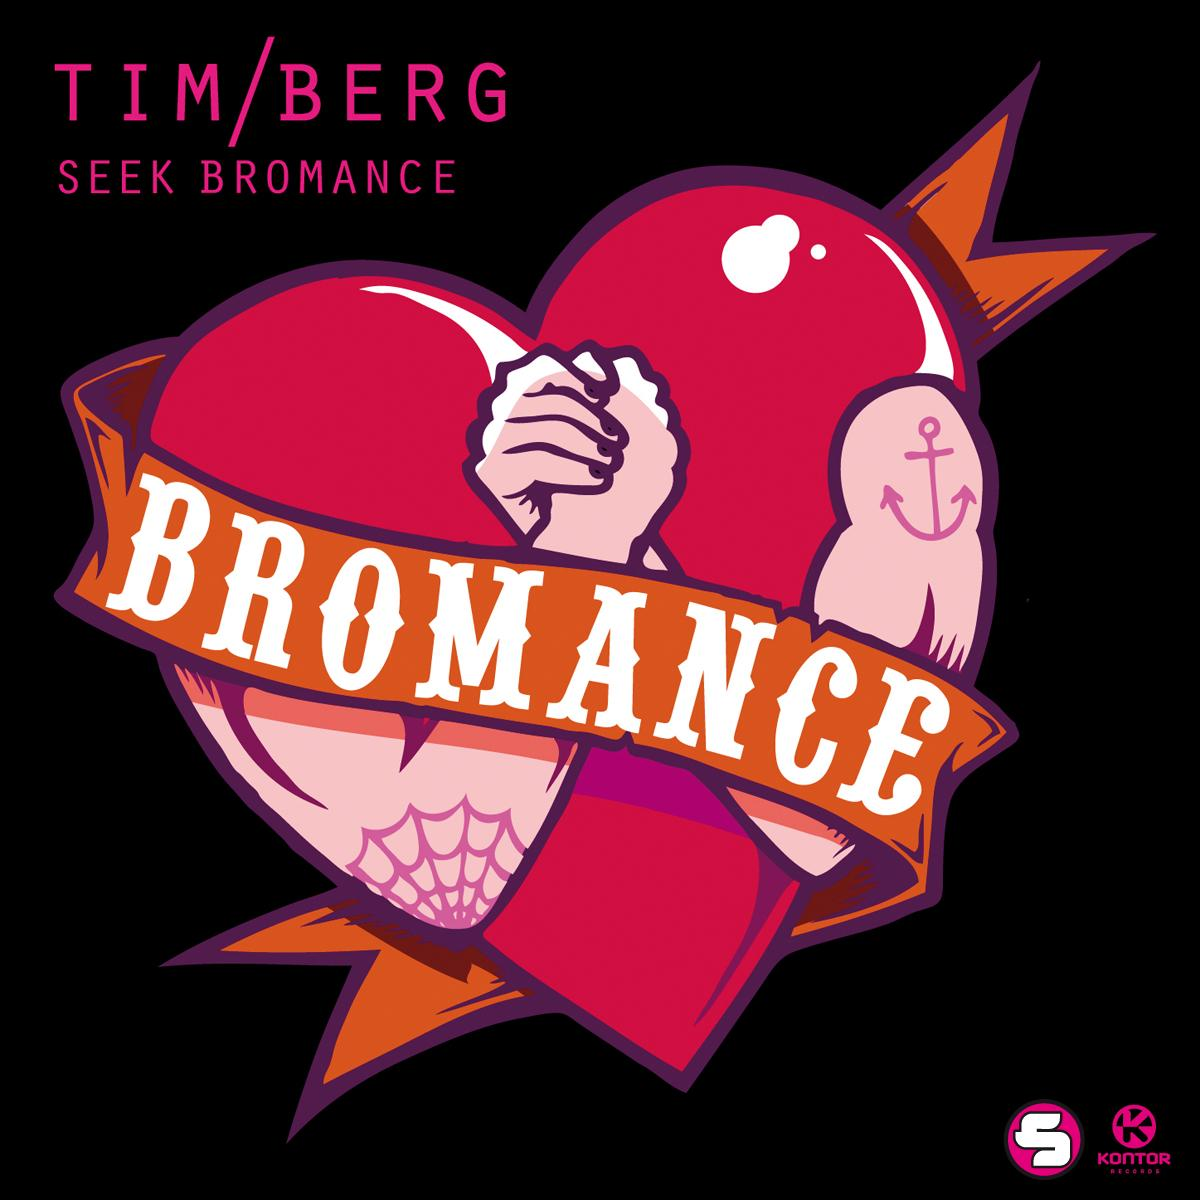 Avicii+-+Seek+Bromance+Artwork.jpg